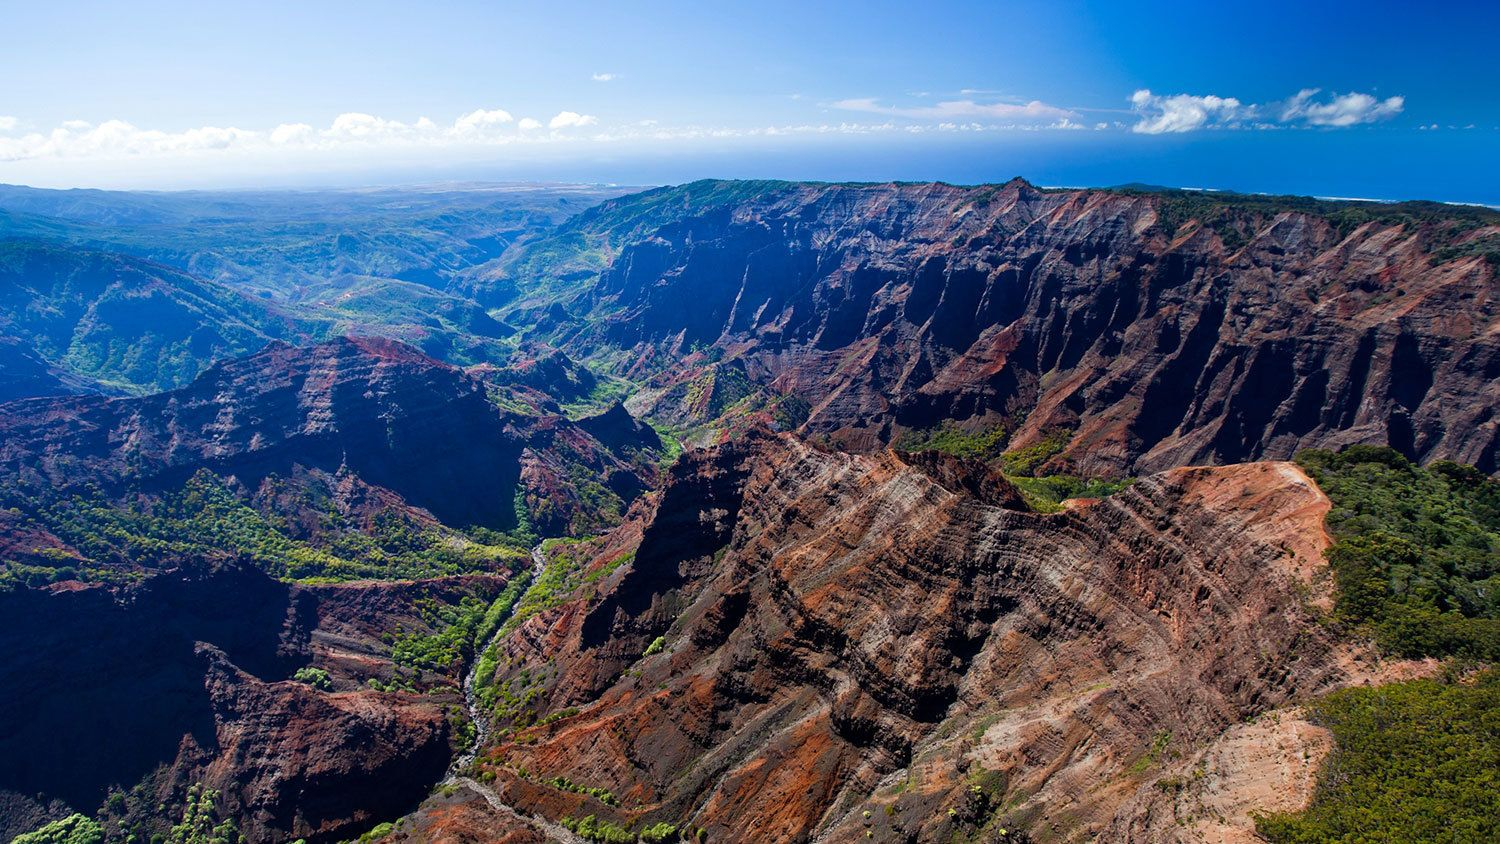 Ariel view of mountain range and valleys in Kauai